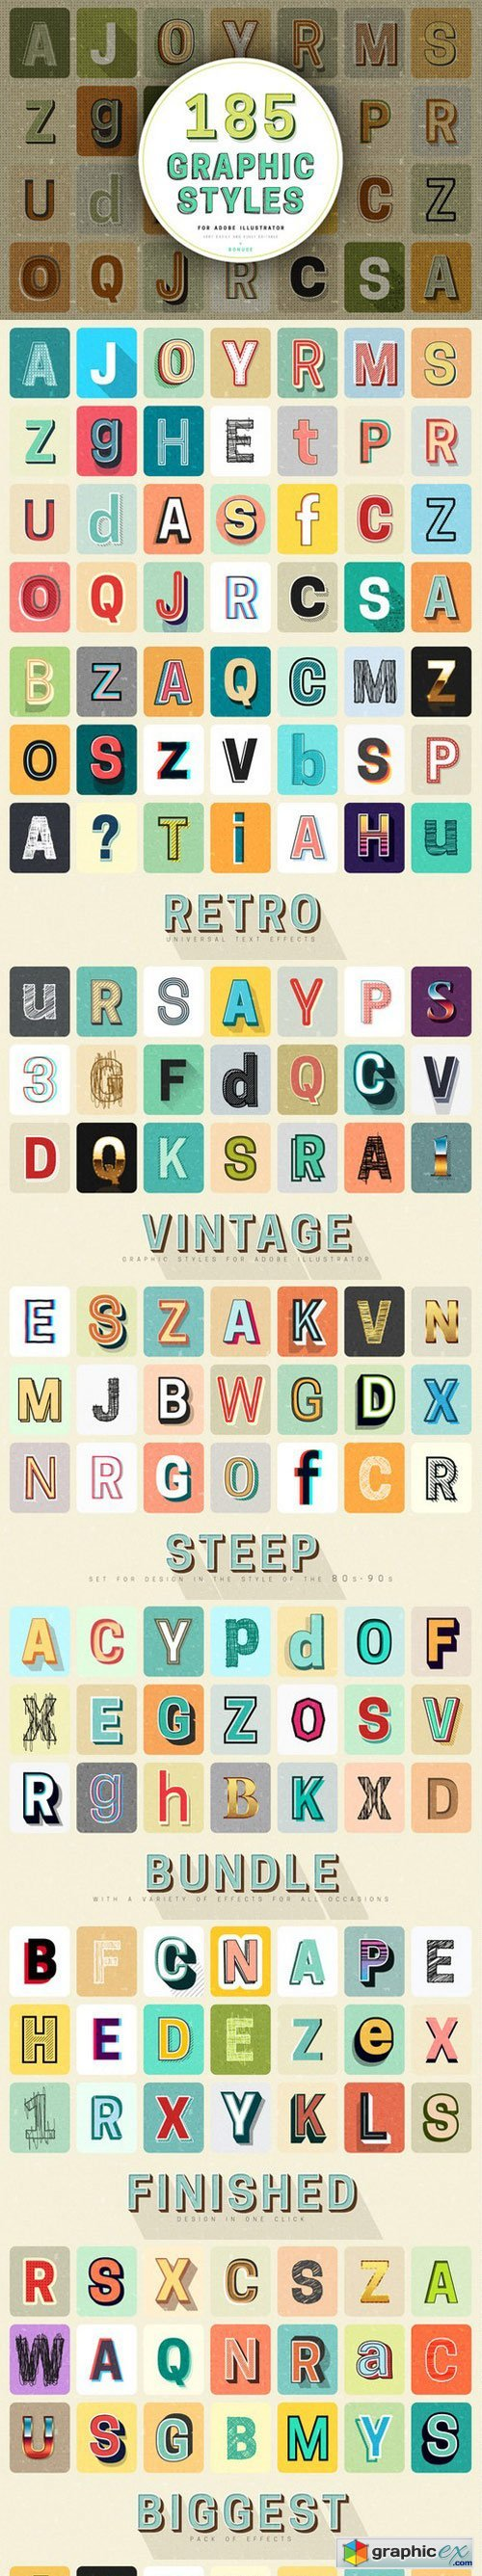 Retro Typography Graphic Styles